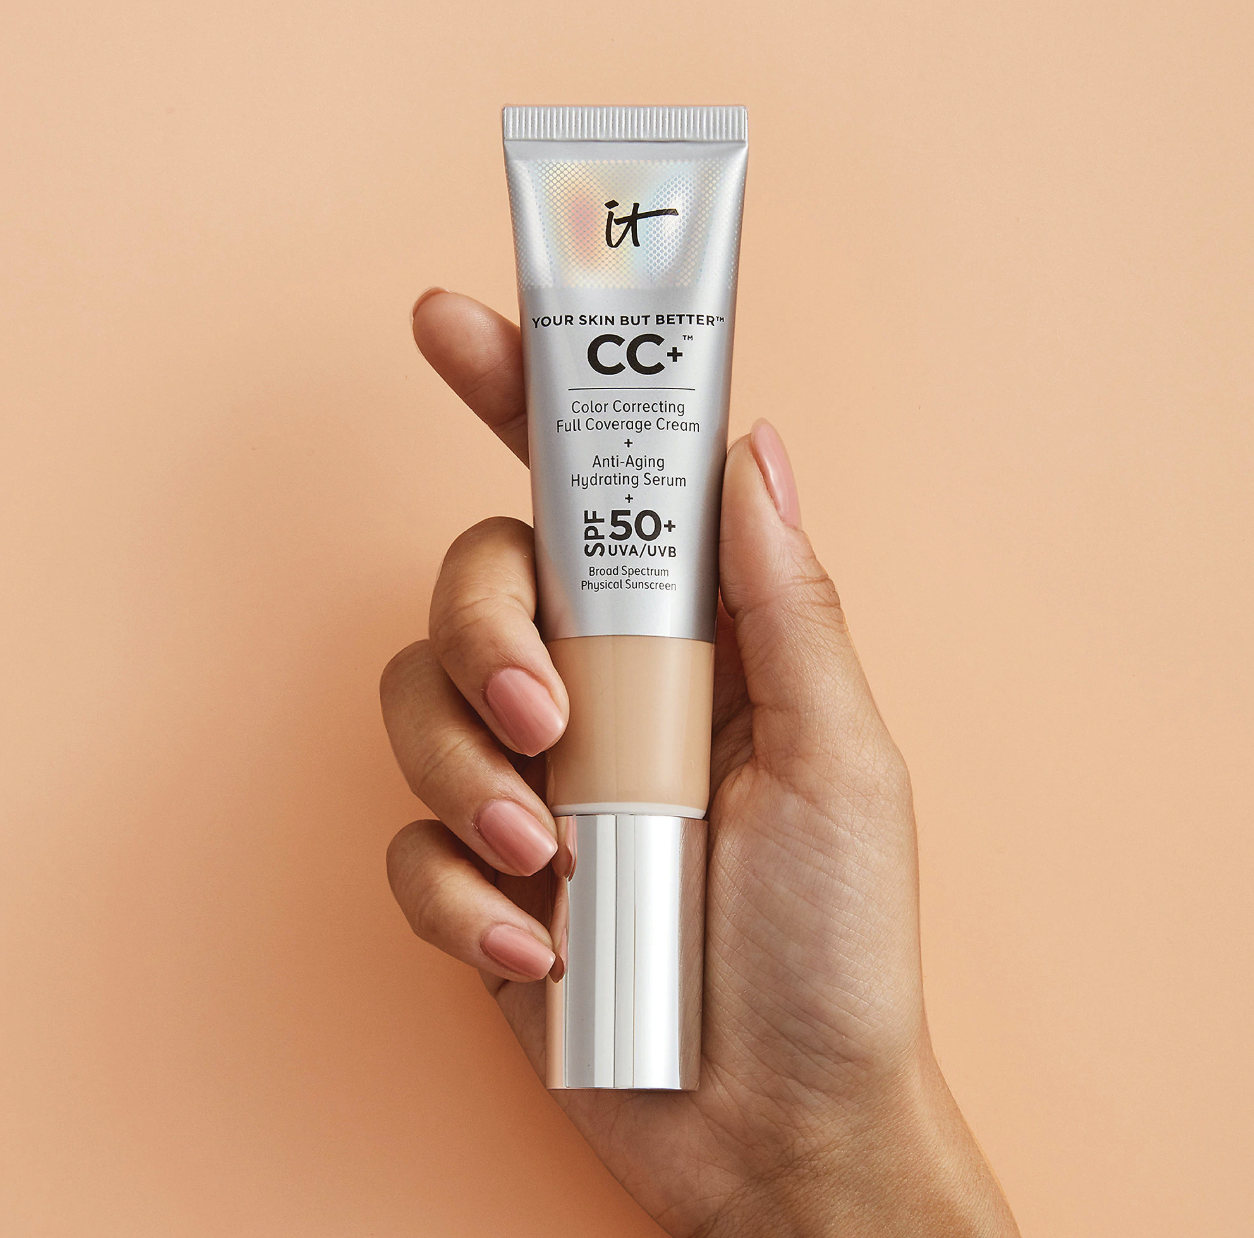 A hand holding a tube of the CC cream